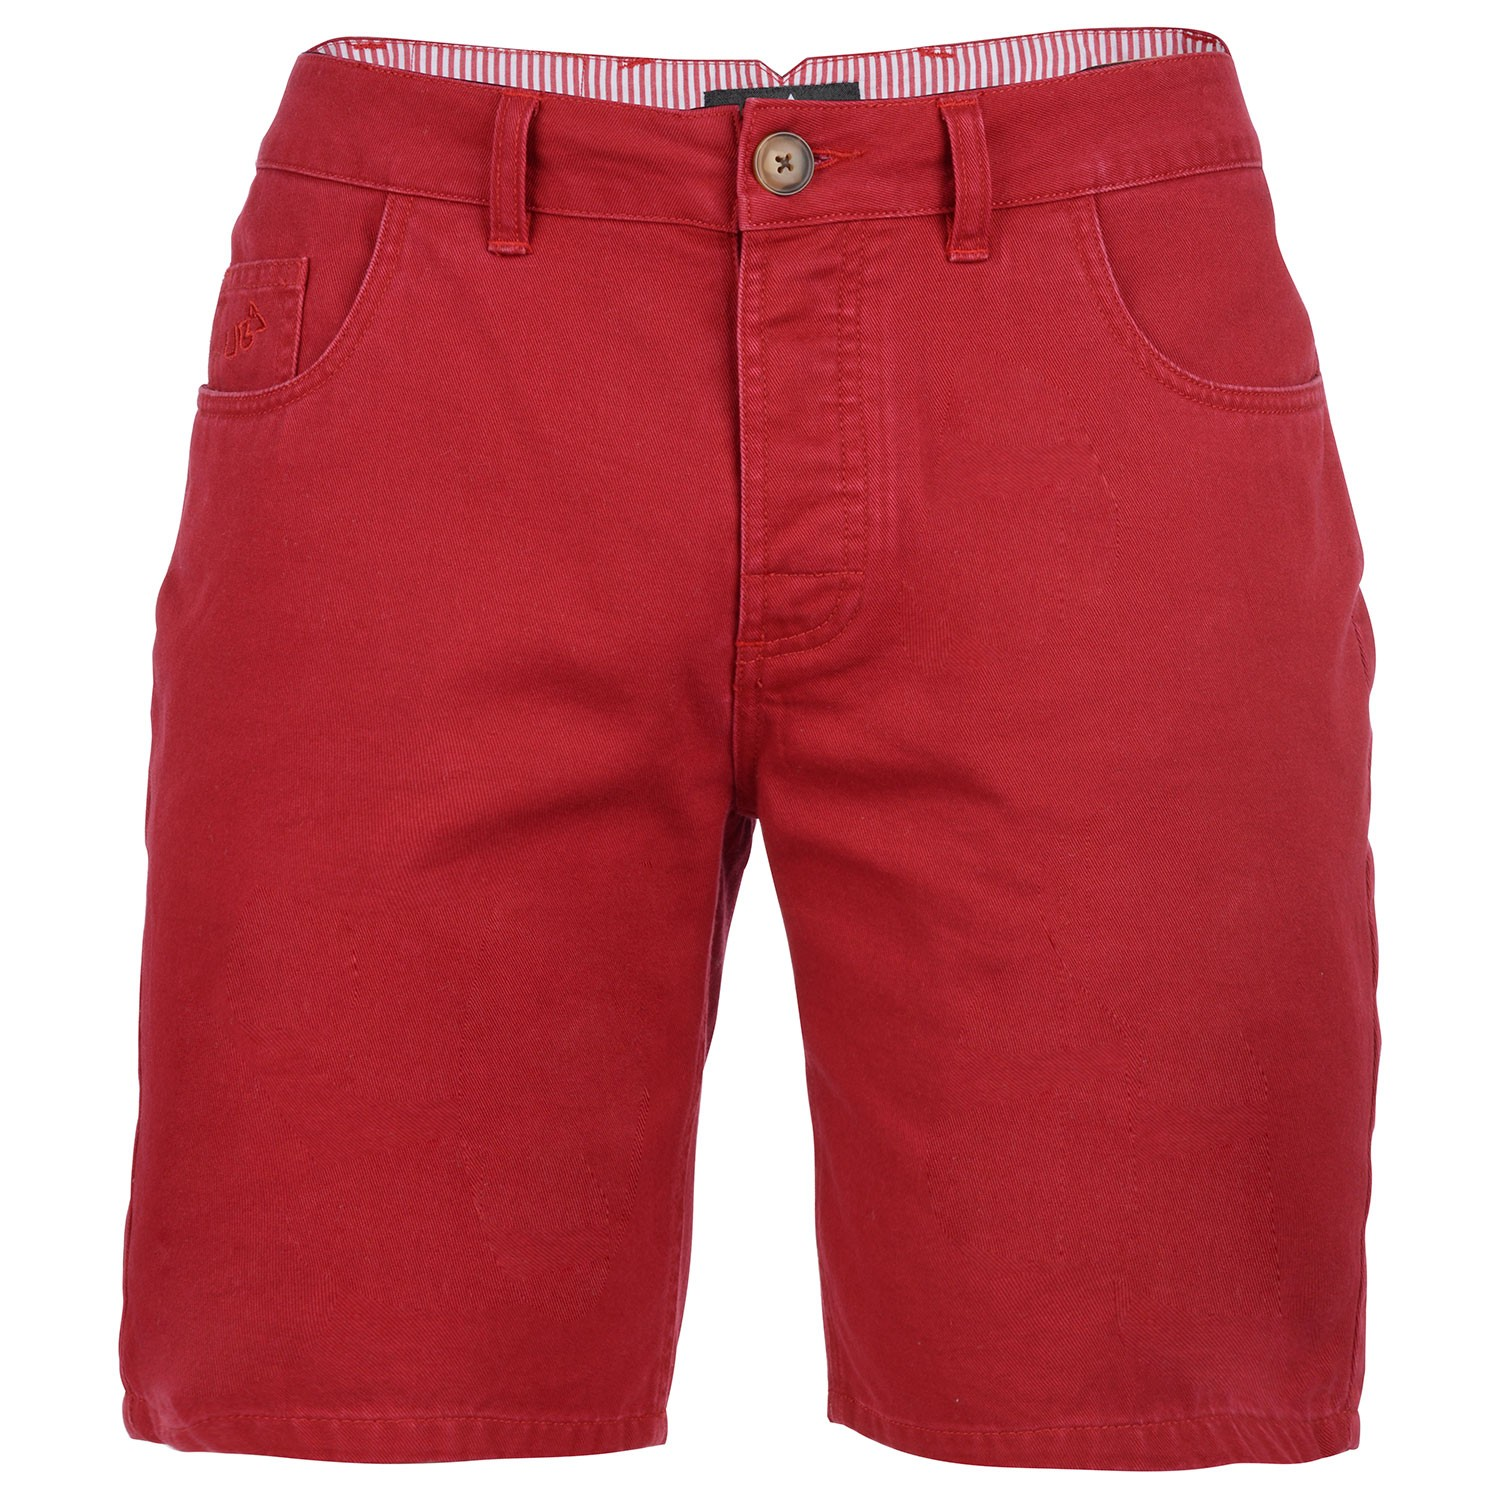 Mens Red Chino Shorts Tamar Free Delivery Over 163 20